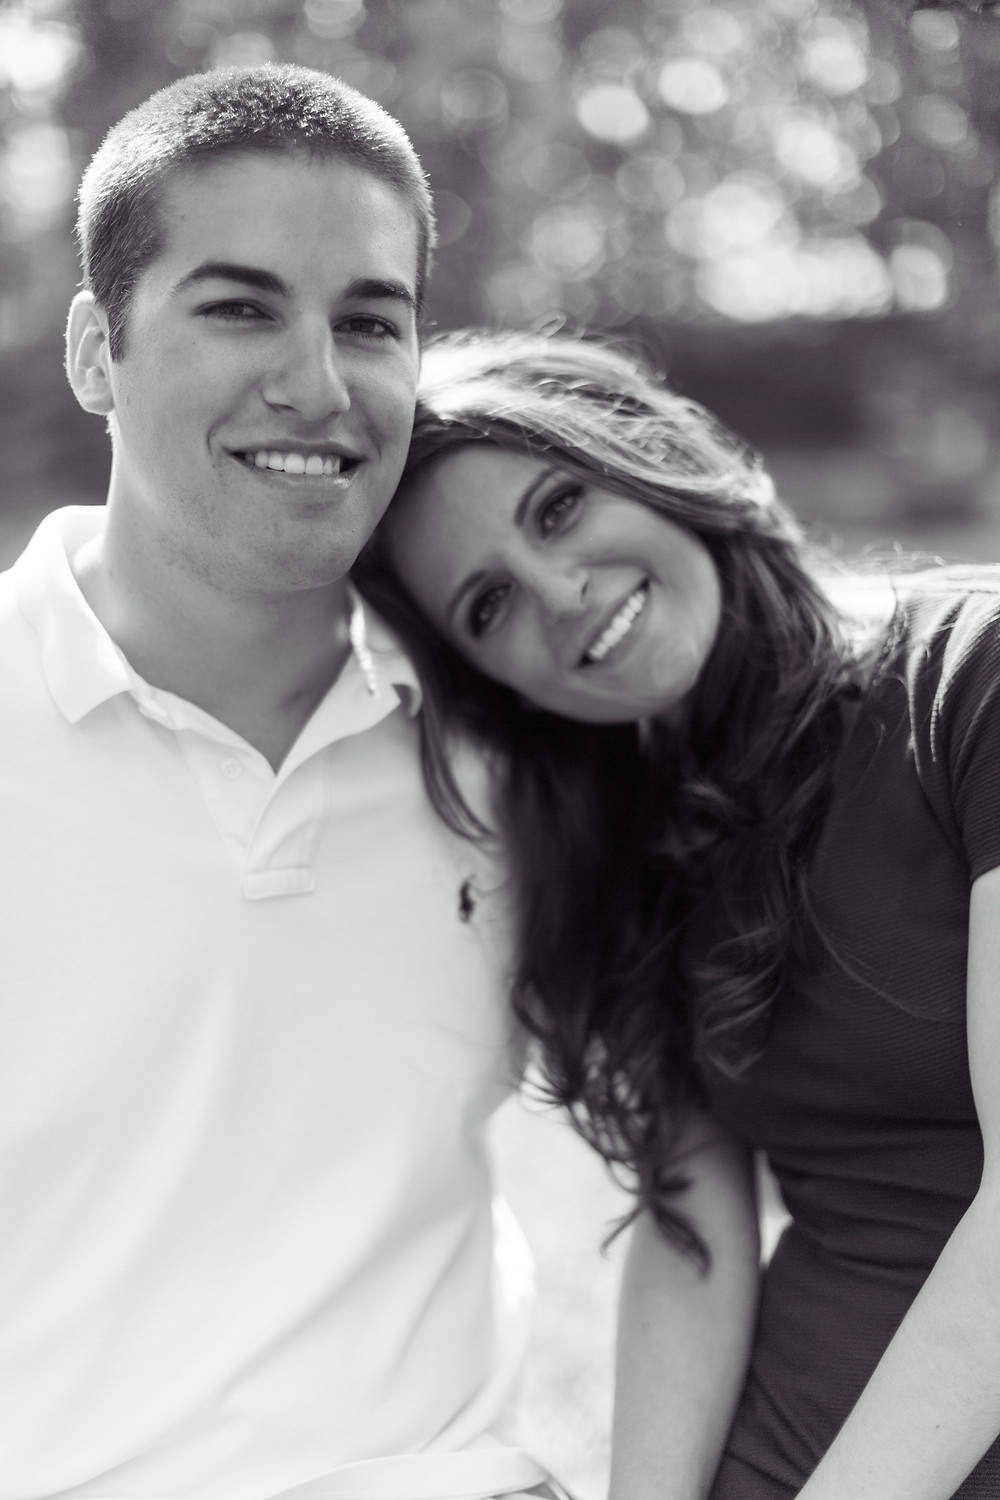 Kate+and+Drew+engagement+photo+1.1+mb.jpg